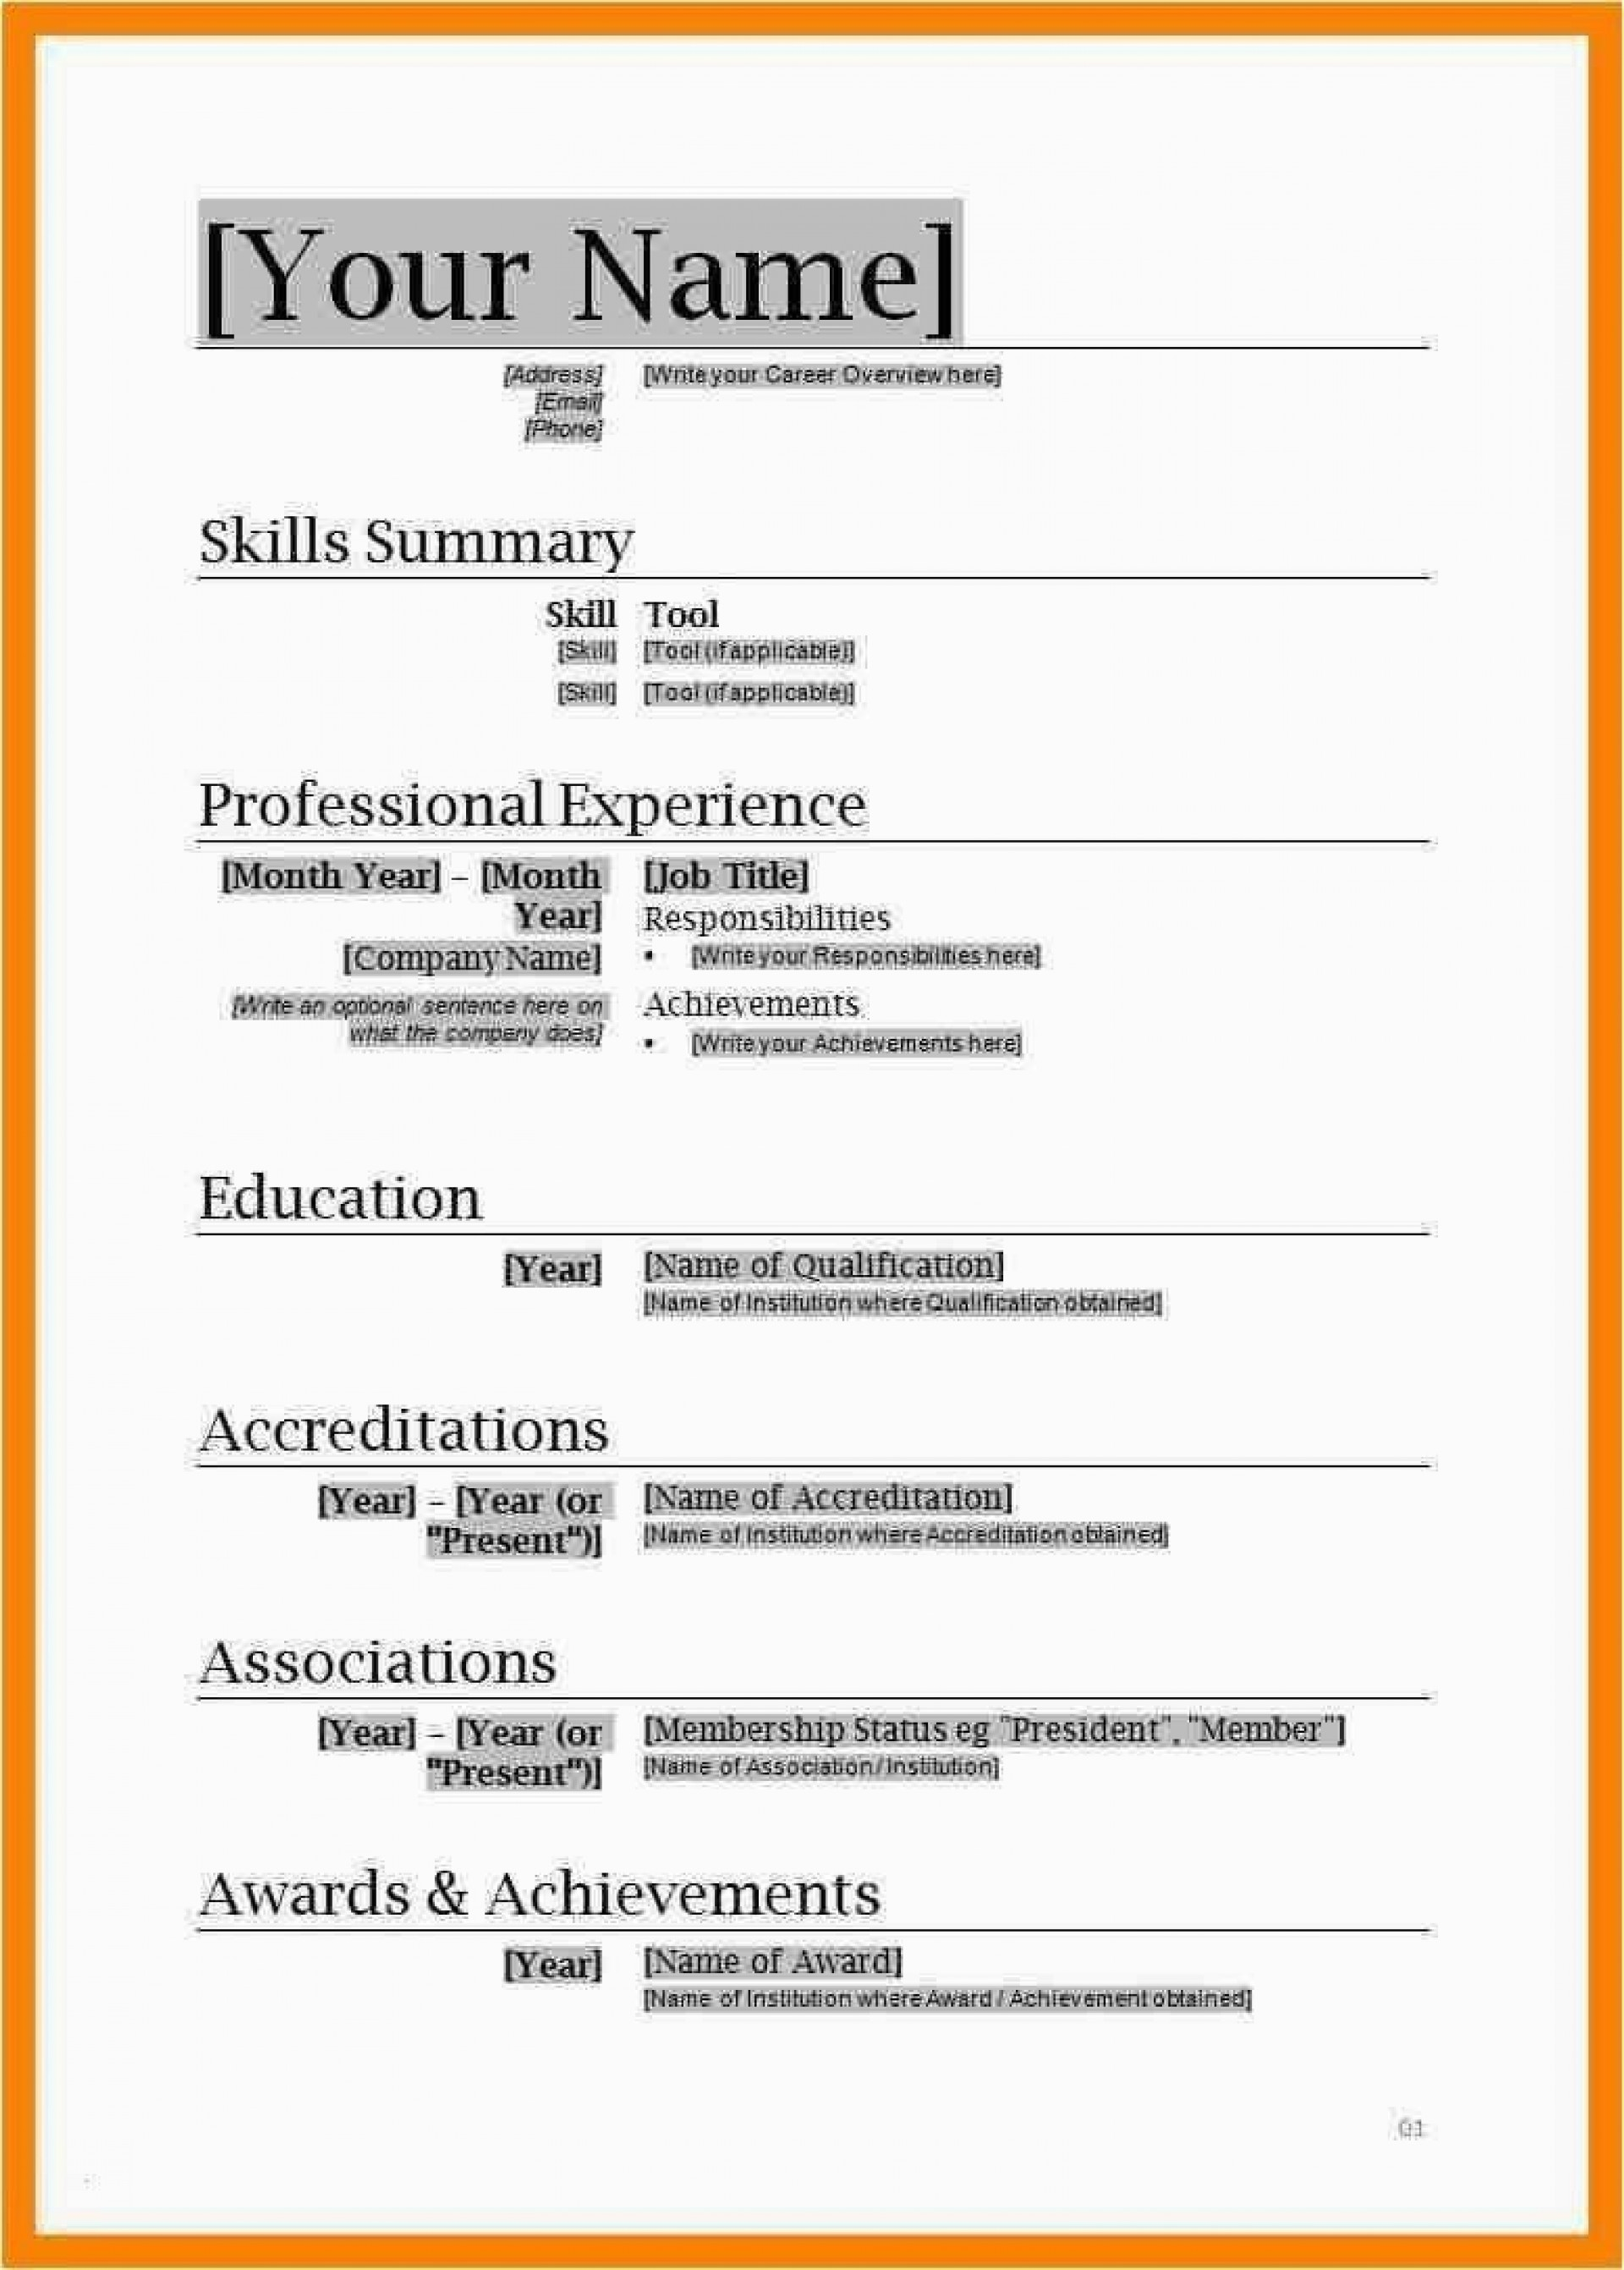 002 Beautiful Simple Resume Template Download In M Word Image 1920